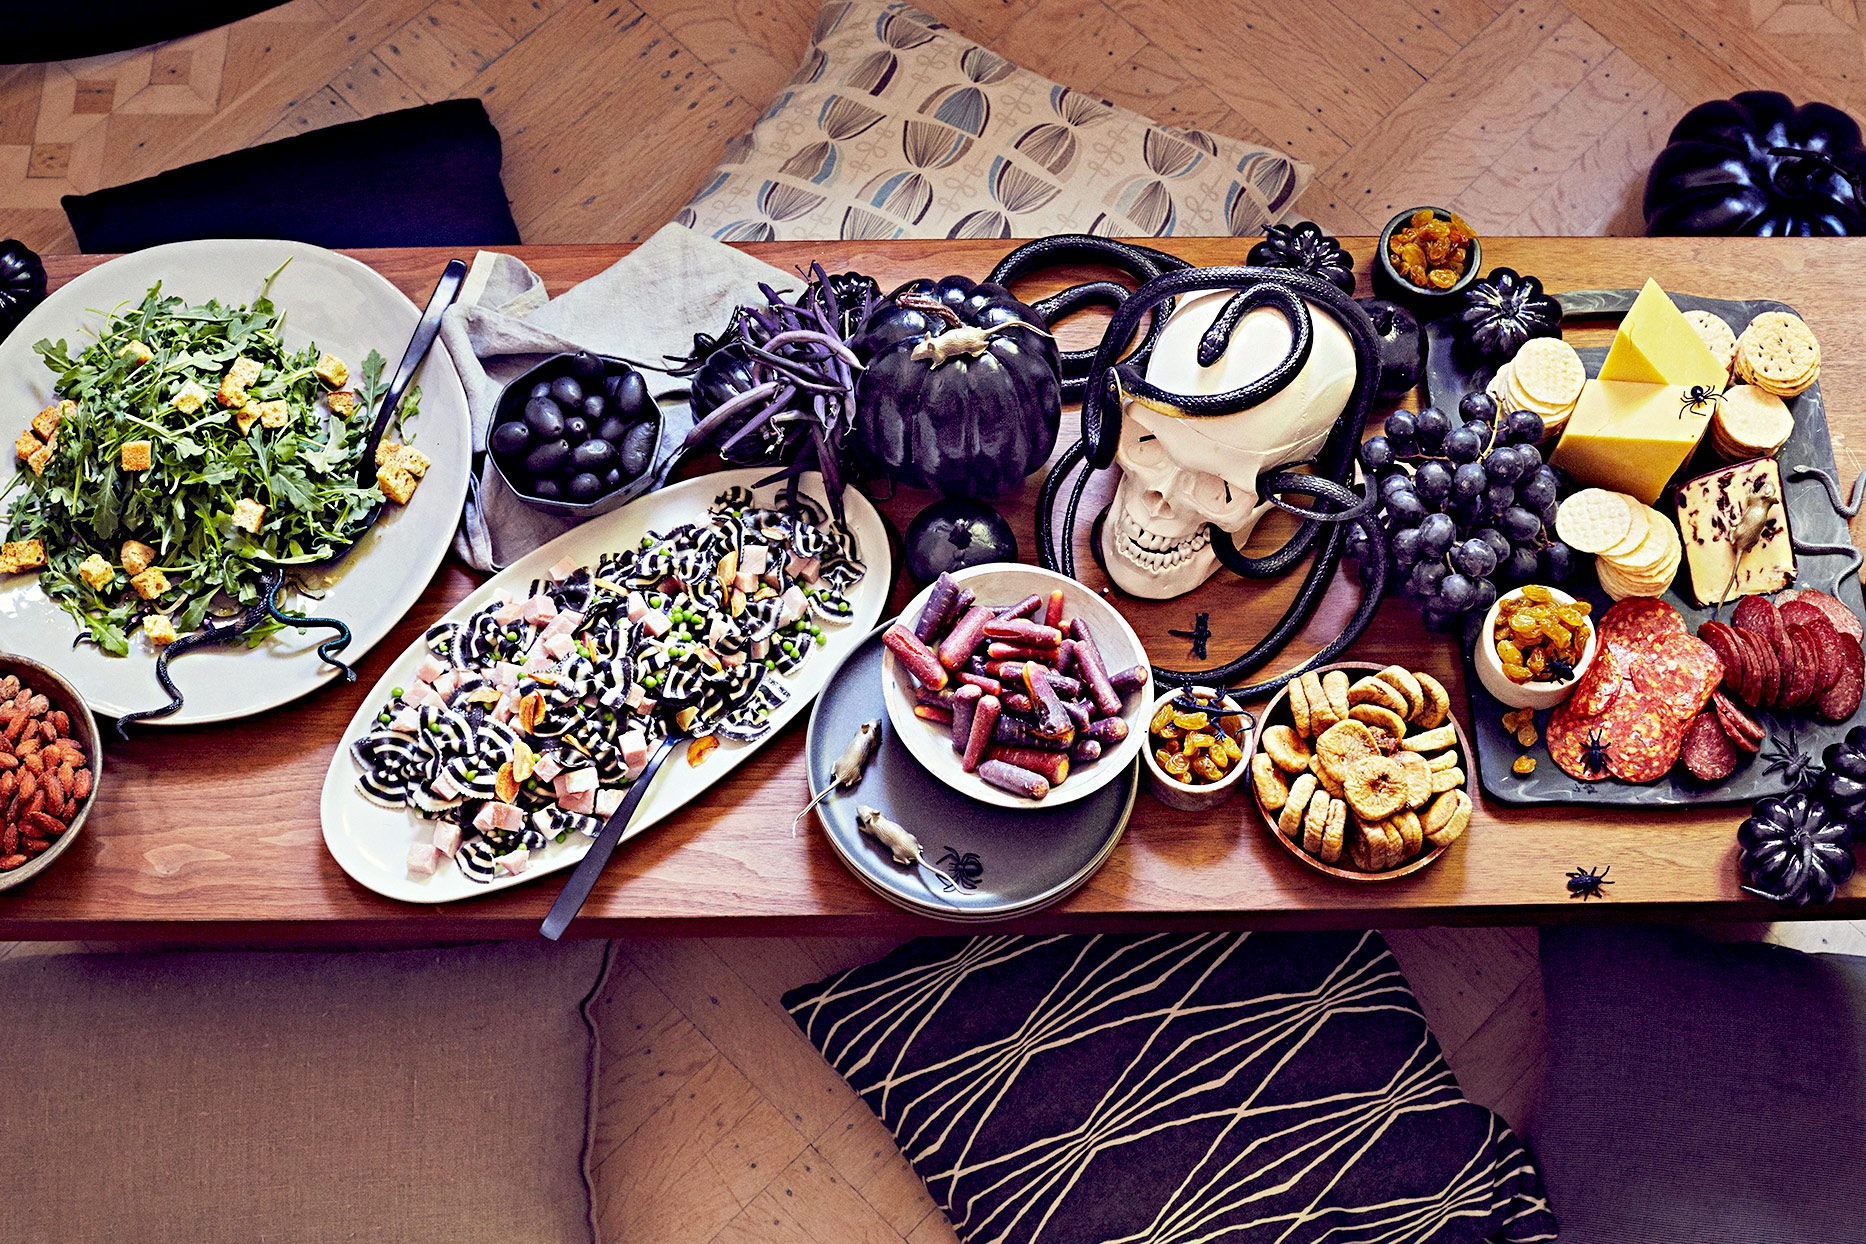 Top view of table with Halloween-themed food